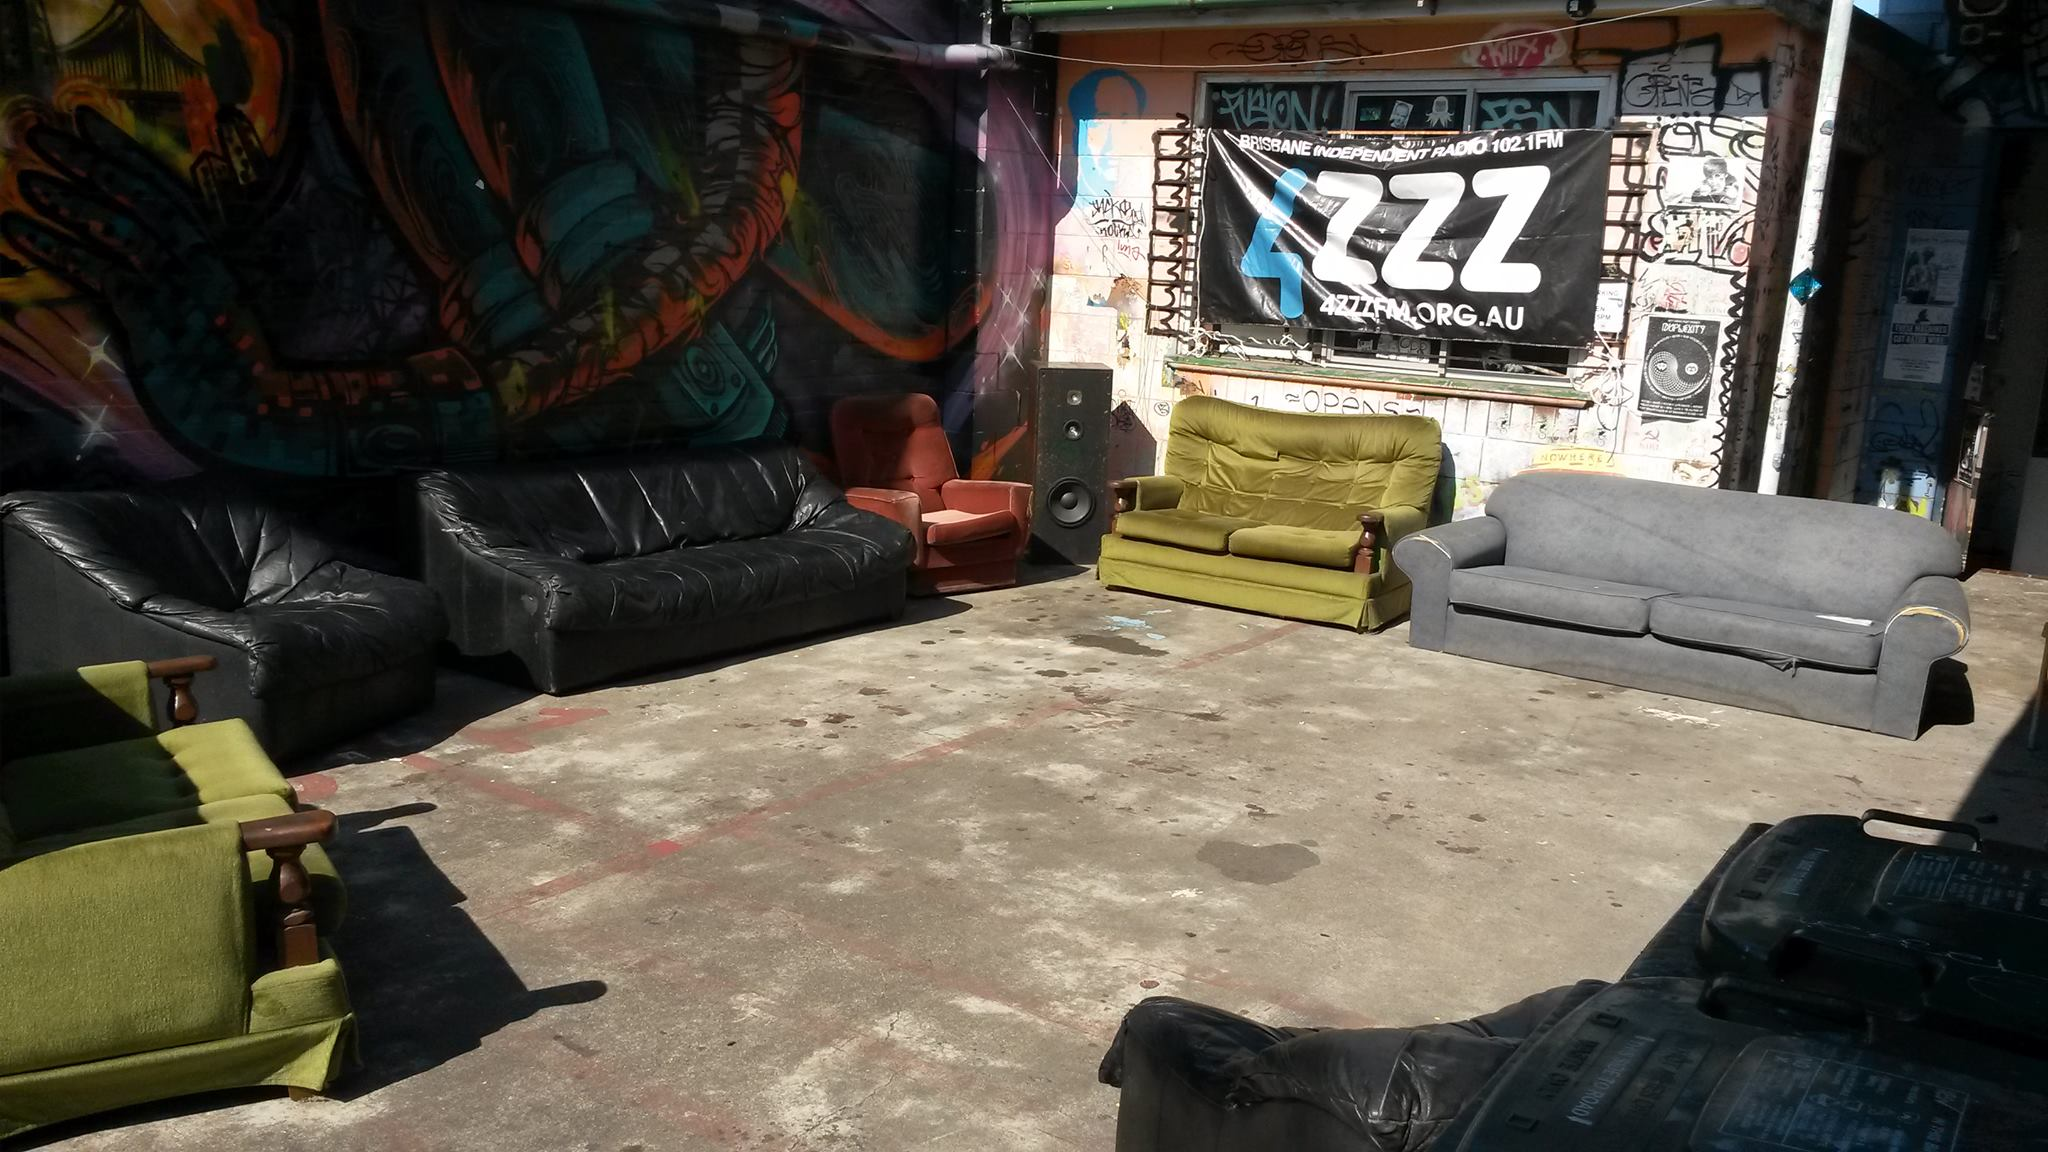 Miraculous What The Hell Is The 4Zzz Brown Couch The Brown Couch Machost Co Dining Chair Design Ideas Machostcouk